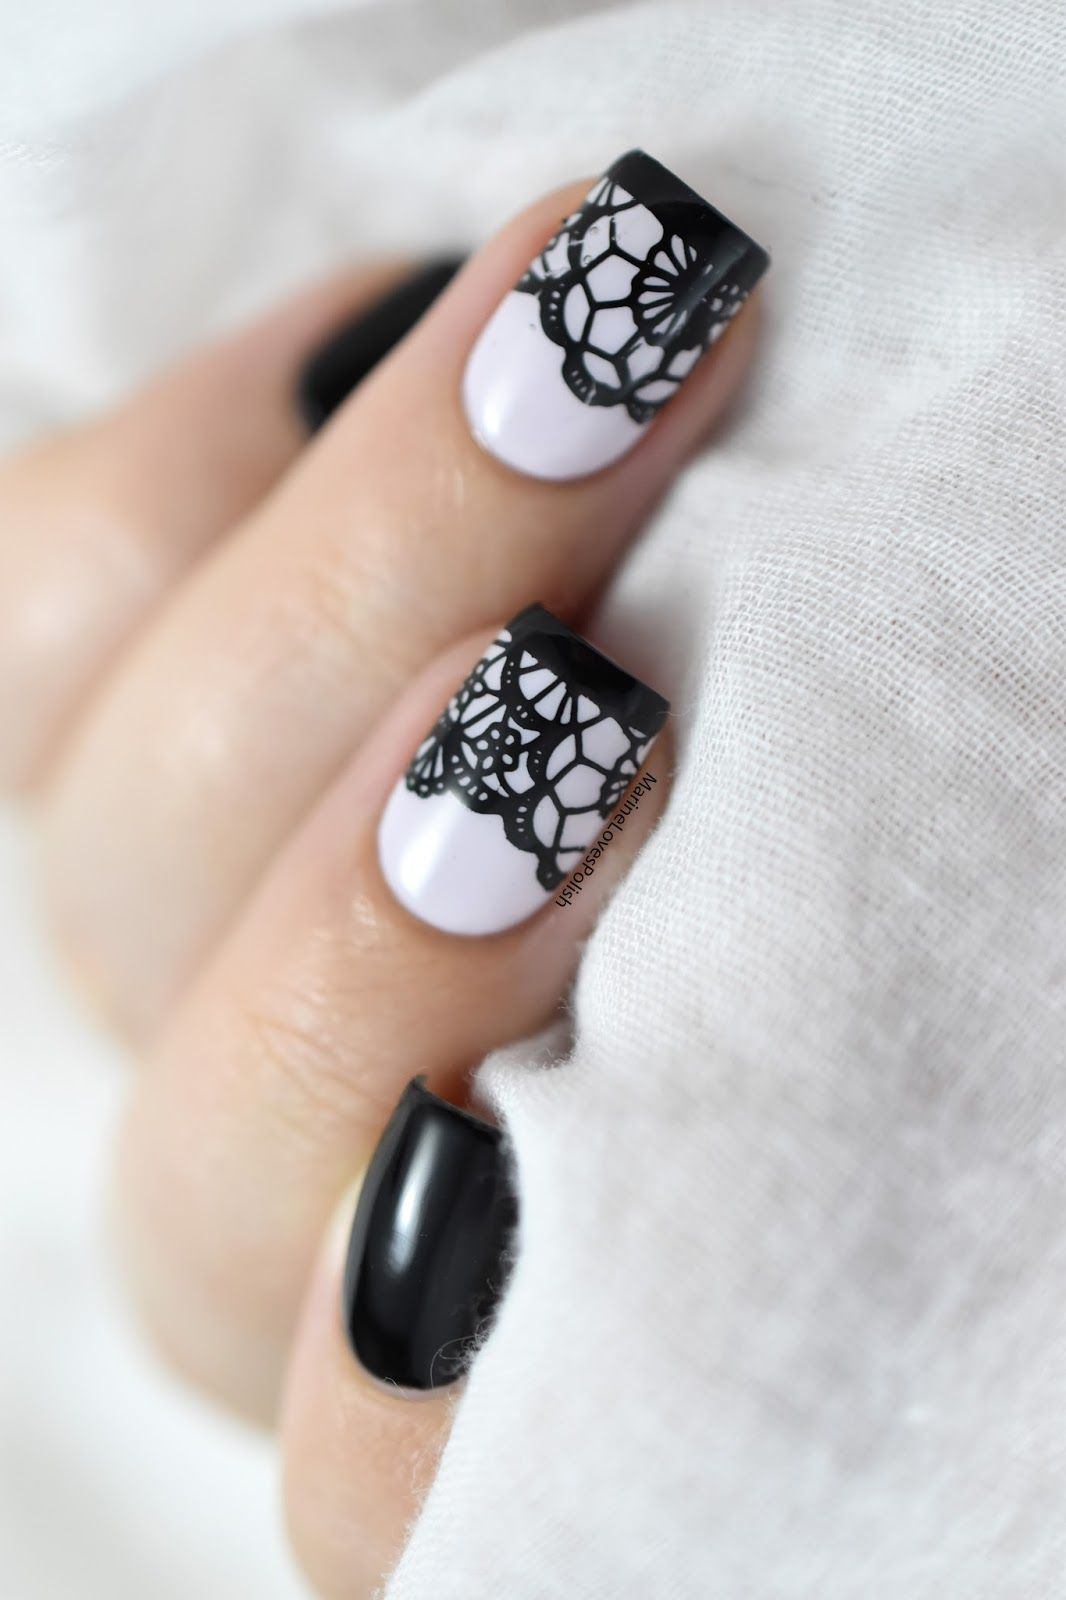 Pin by scarlet connor on Nails | Pinterest | Manicure, Black nails ...